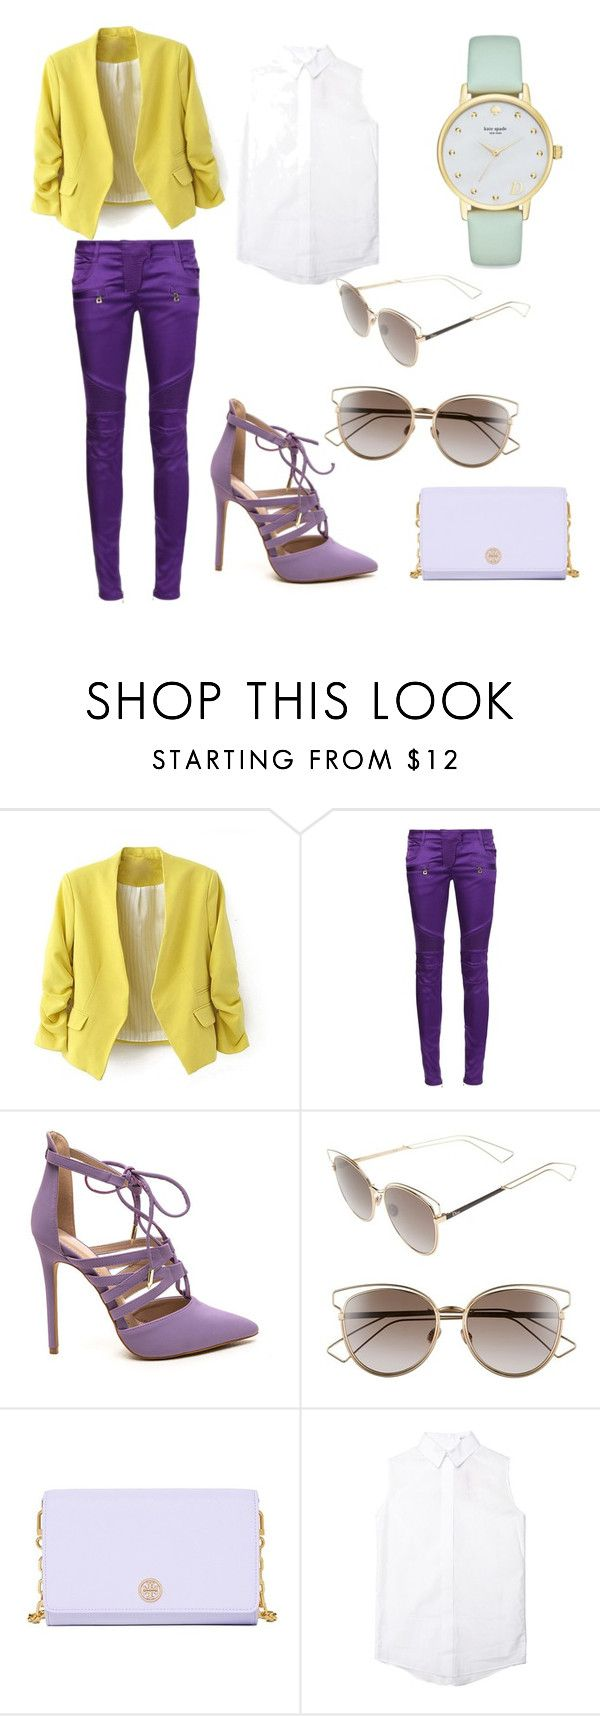 """""""25.1"""" by tess1204 on Polyvore featuring Balmain, Christian Dior, Tory Burch and Kate Spade"""